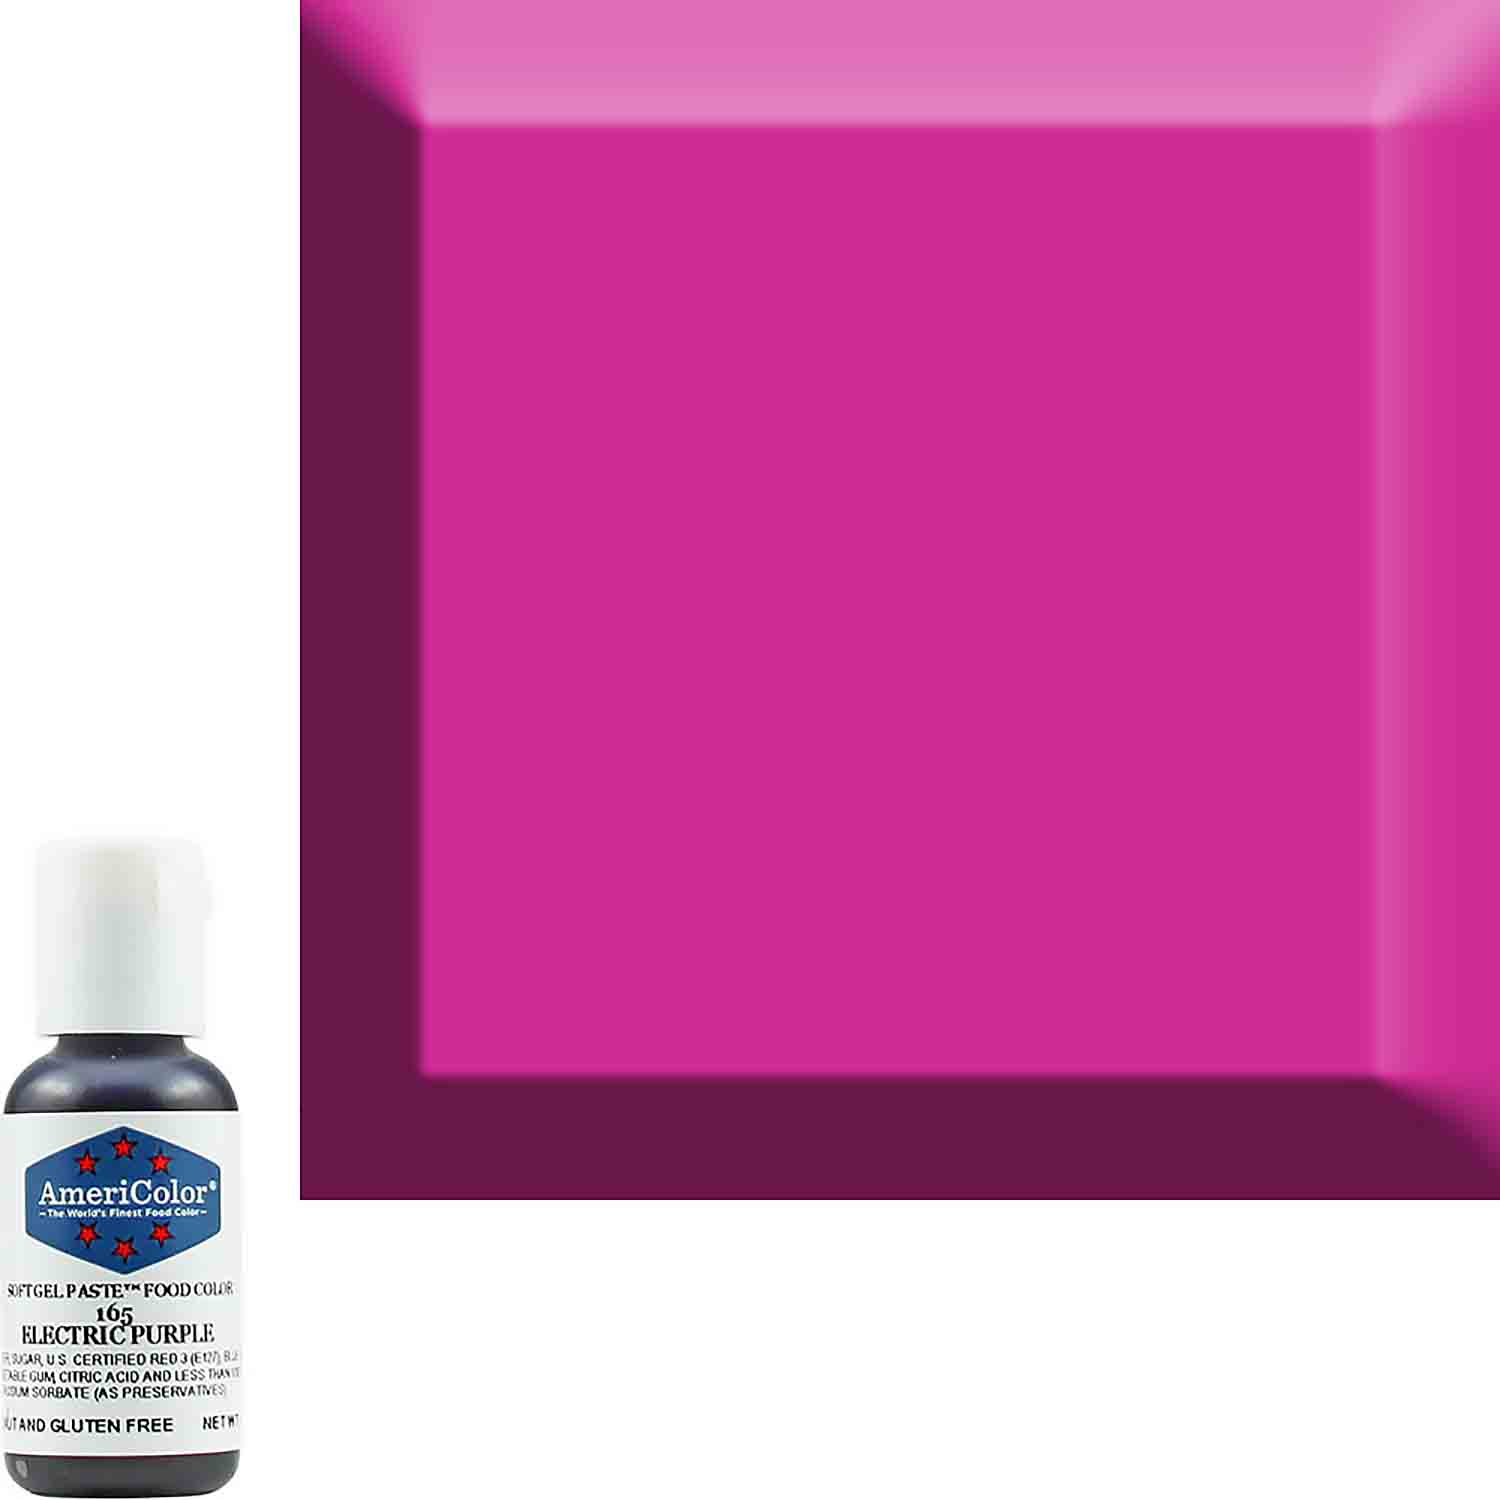 Neon/Electric Purple AmeriColor® Soft Gel Paste™ Food Color